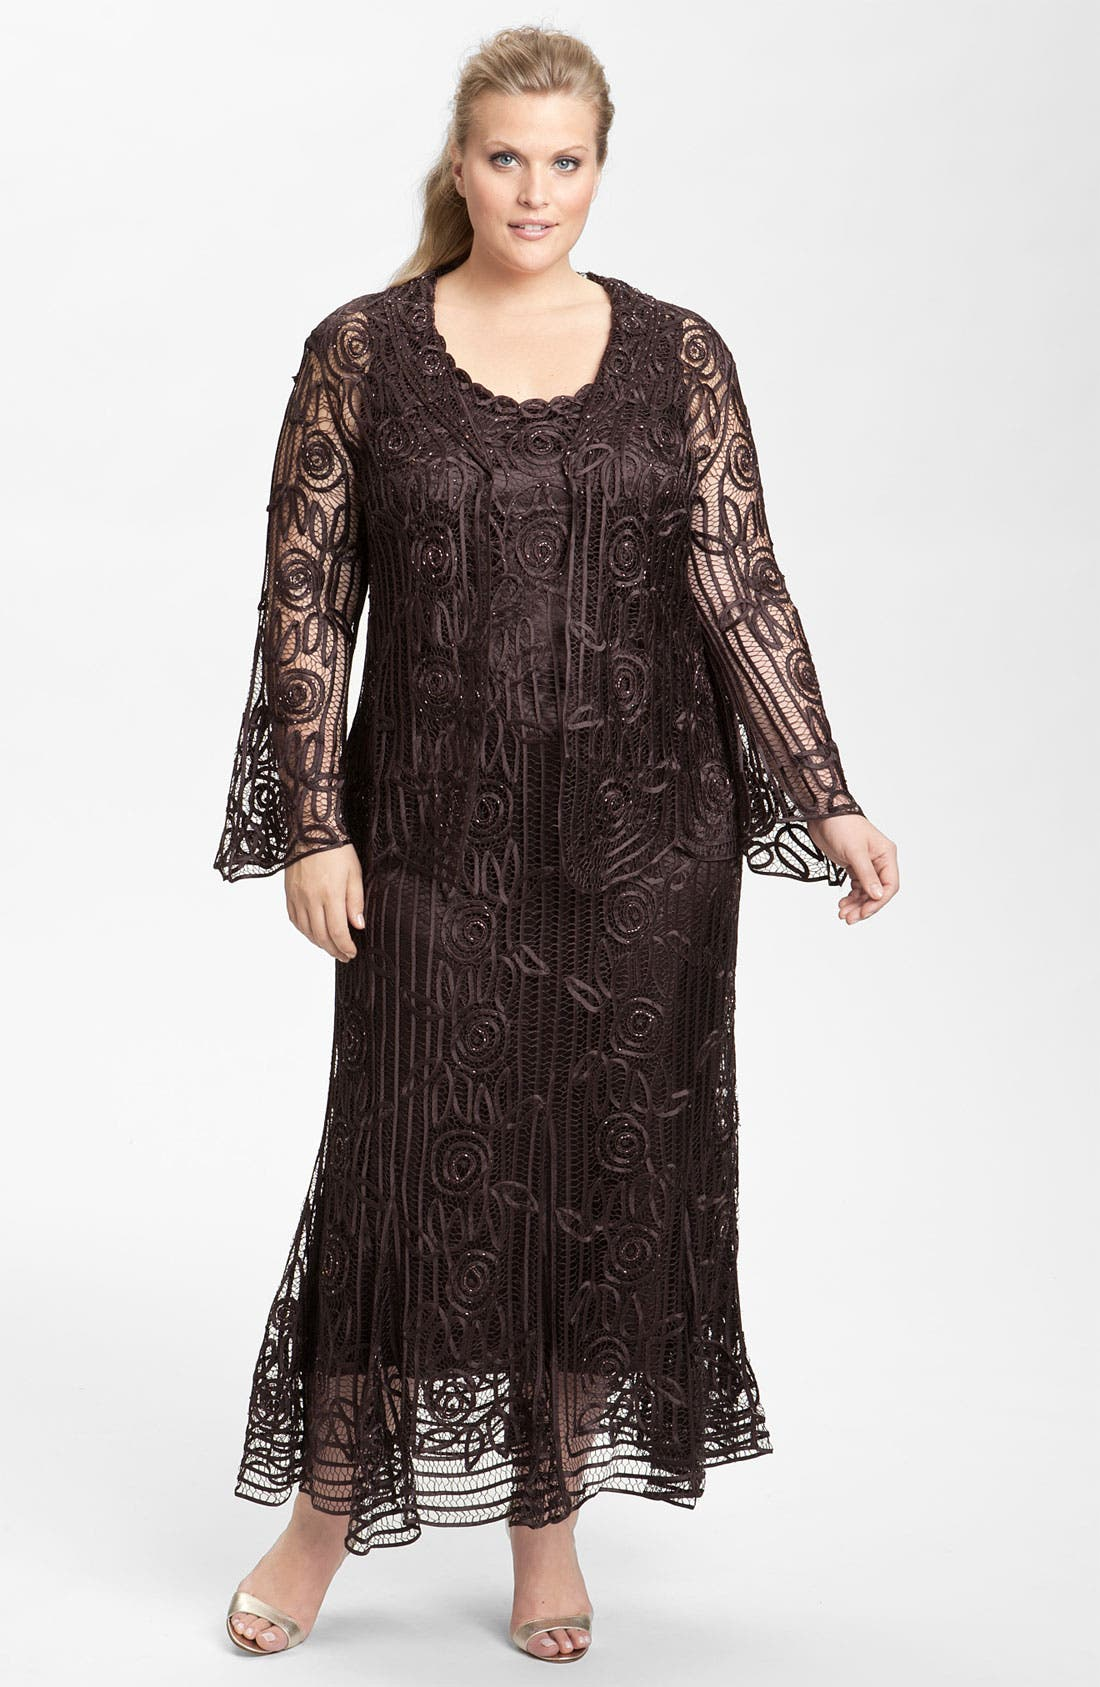 Alternate Image 1 Selected - Soulmates Ribbon Silk Dress & Jacket (Plus Size)